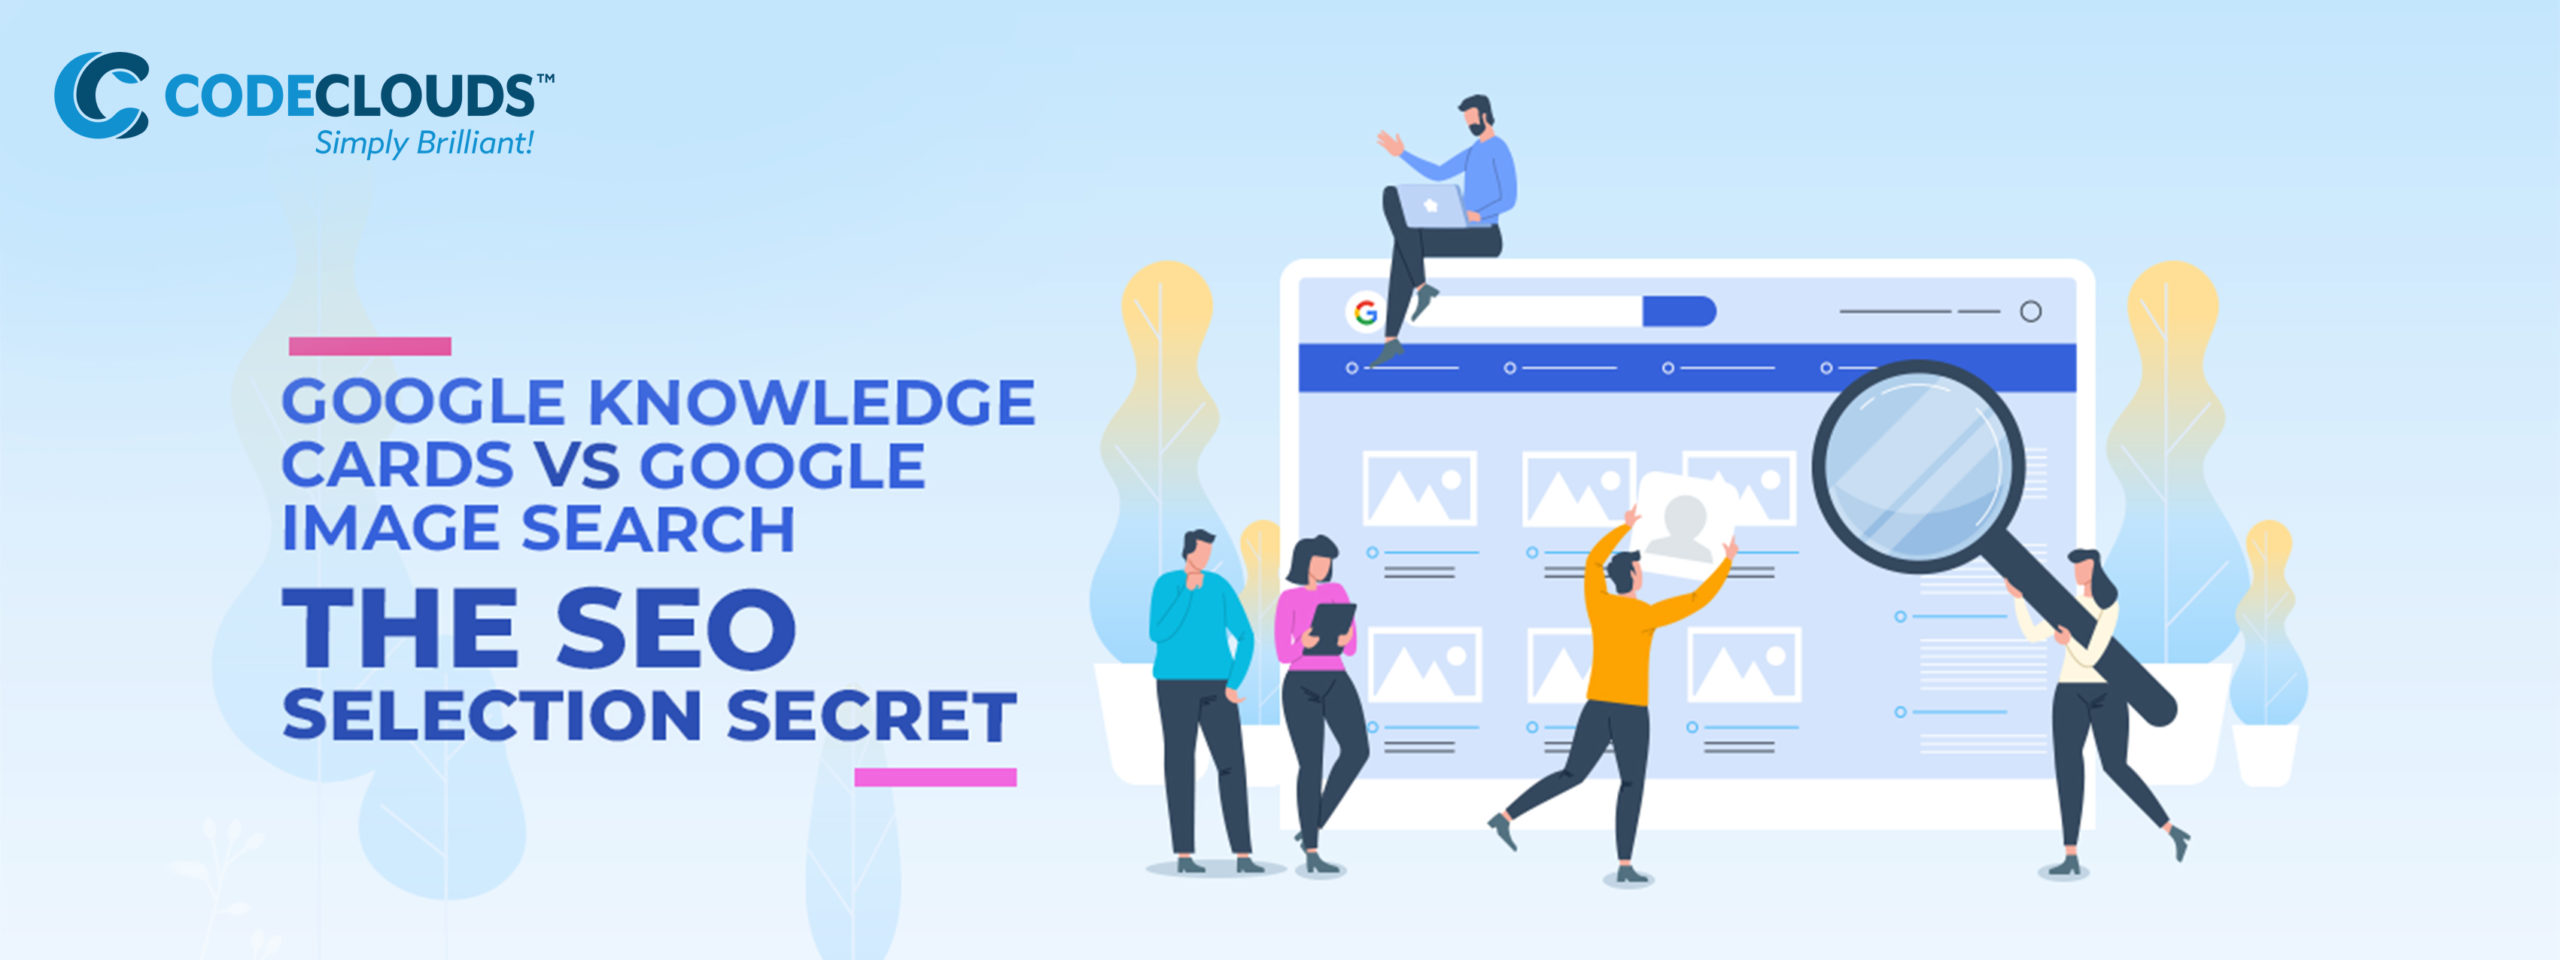 Google Knowledge Cards vs Google Image Search: The SEO Selection Secret